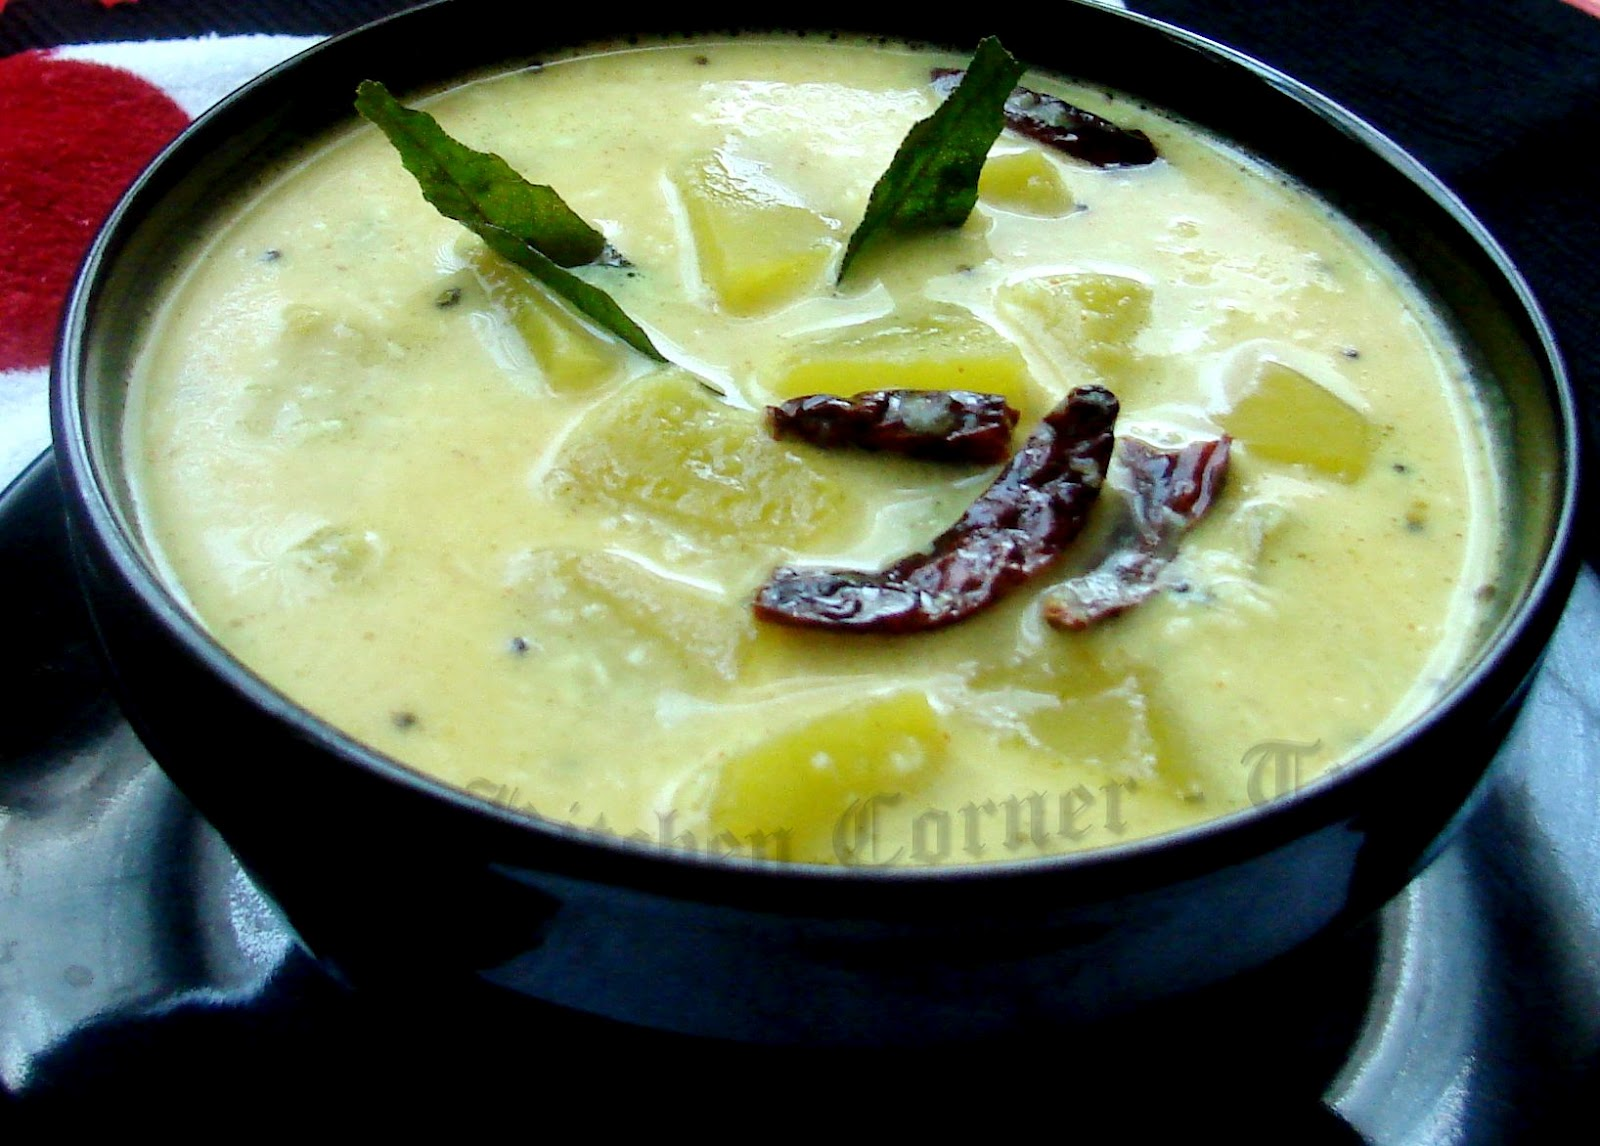 ... Corner-Try It: Kapplanga Thenga Aracha Curry/Green Papaya Curry